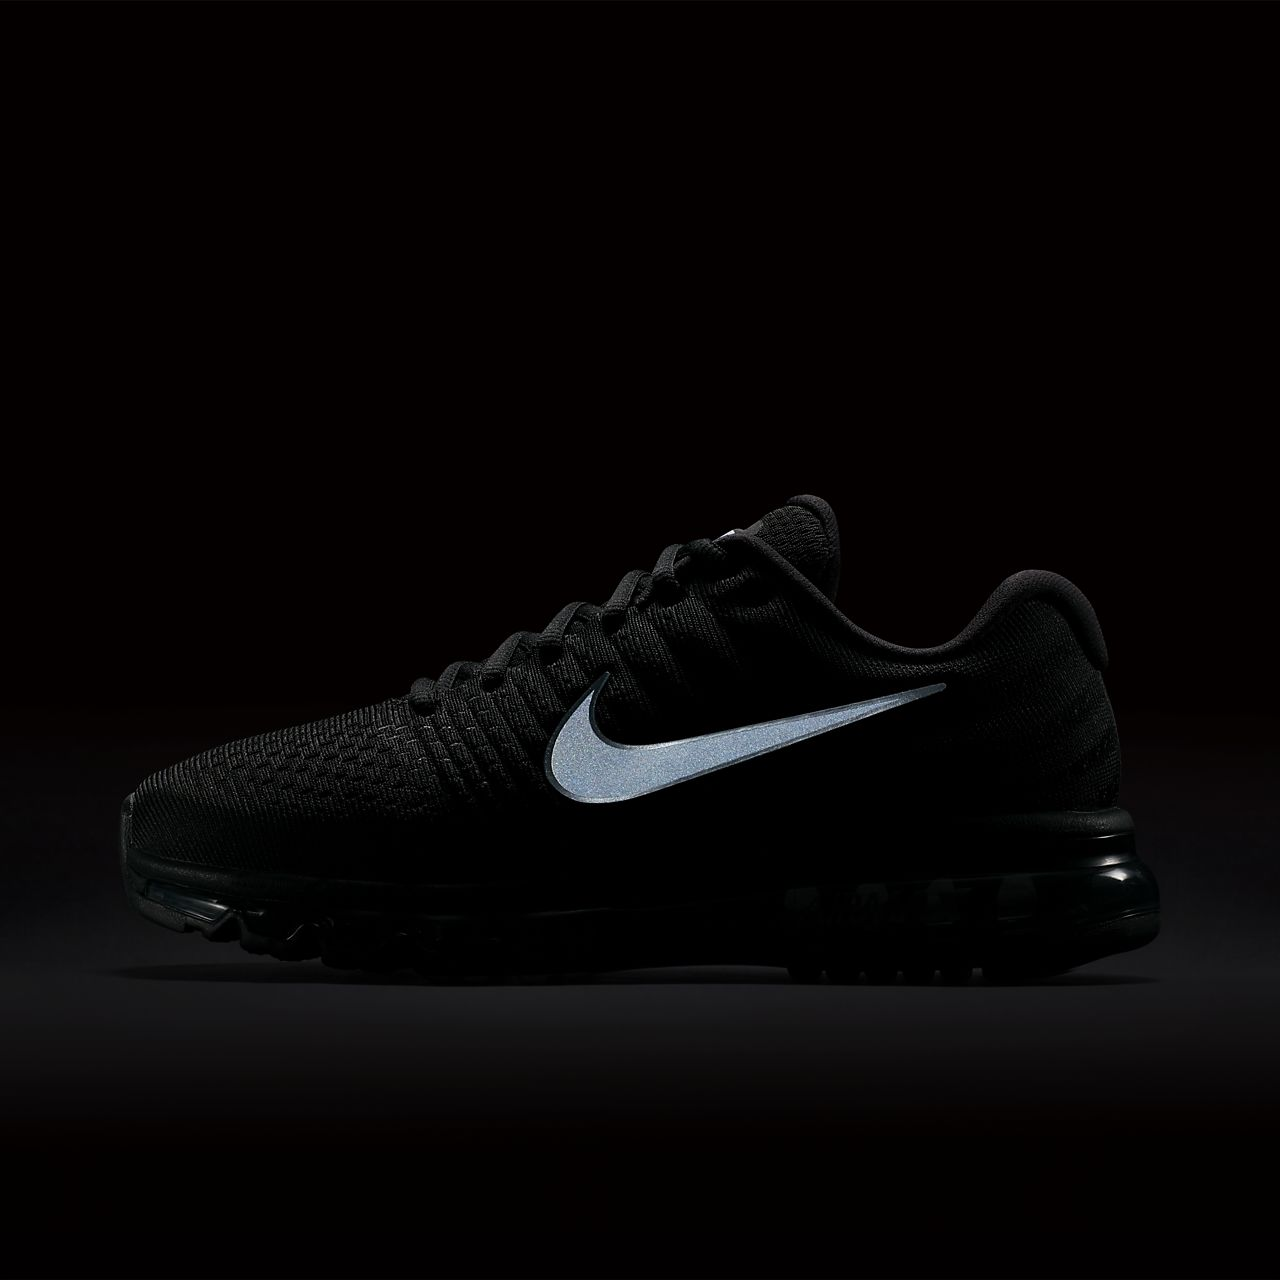 outlet store d1826 92eea ... Chaussure Nike Air Max 2017 pour Homme